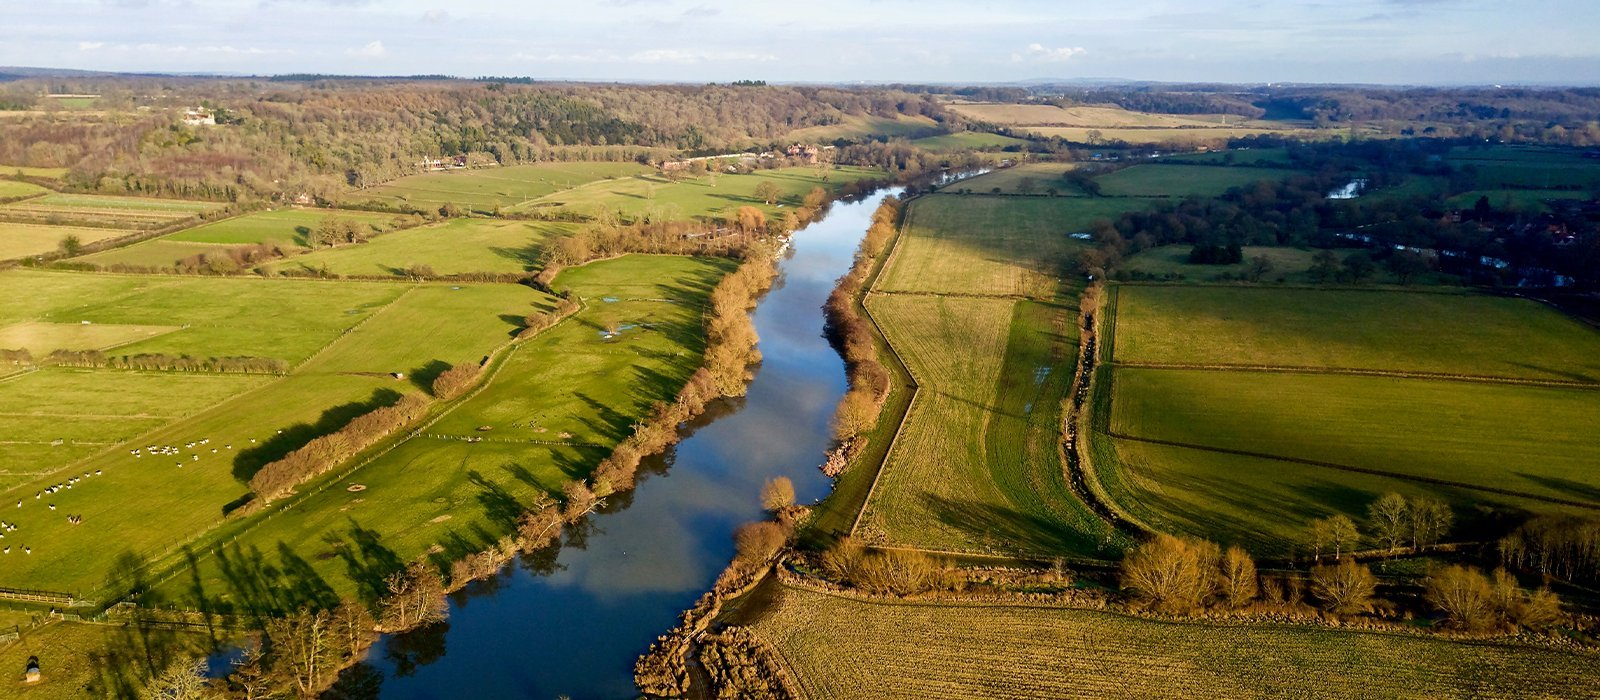 Aerial photo over The River Thames towards Reading in Berkshire countryside, UK